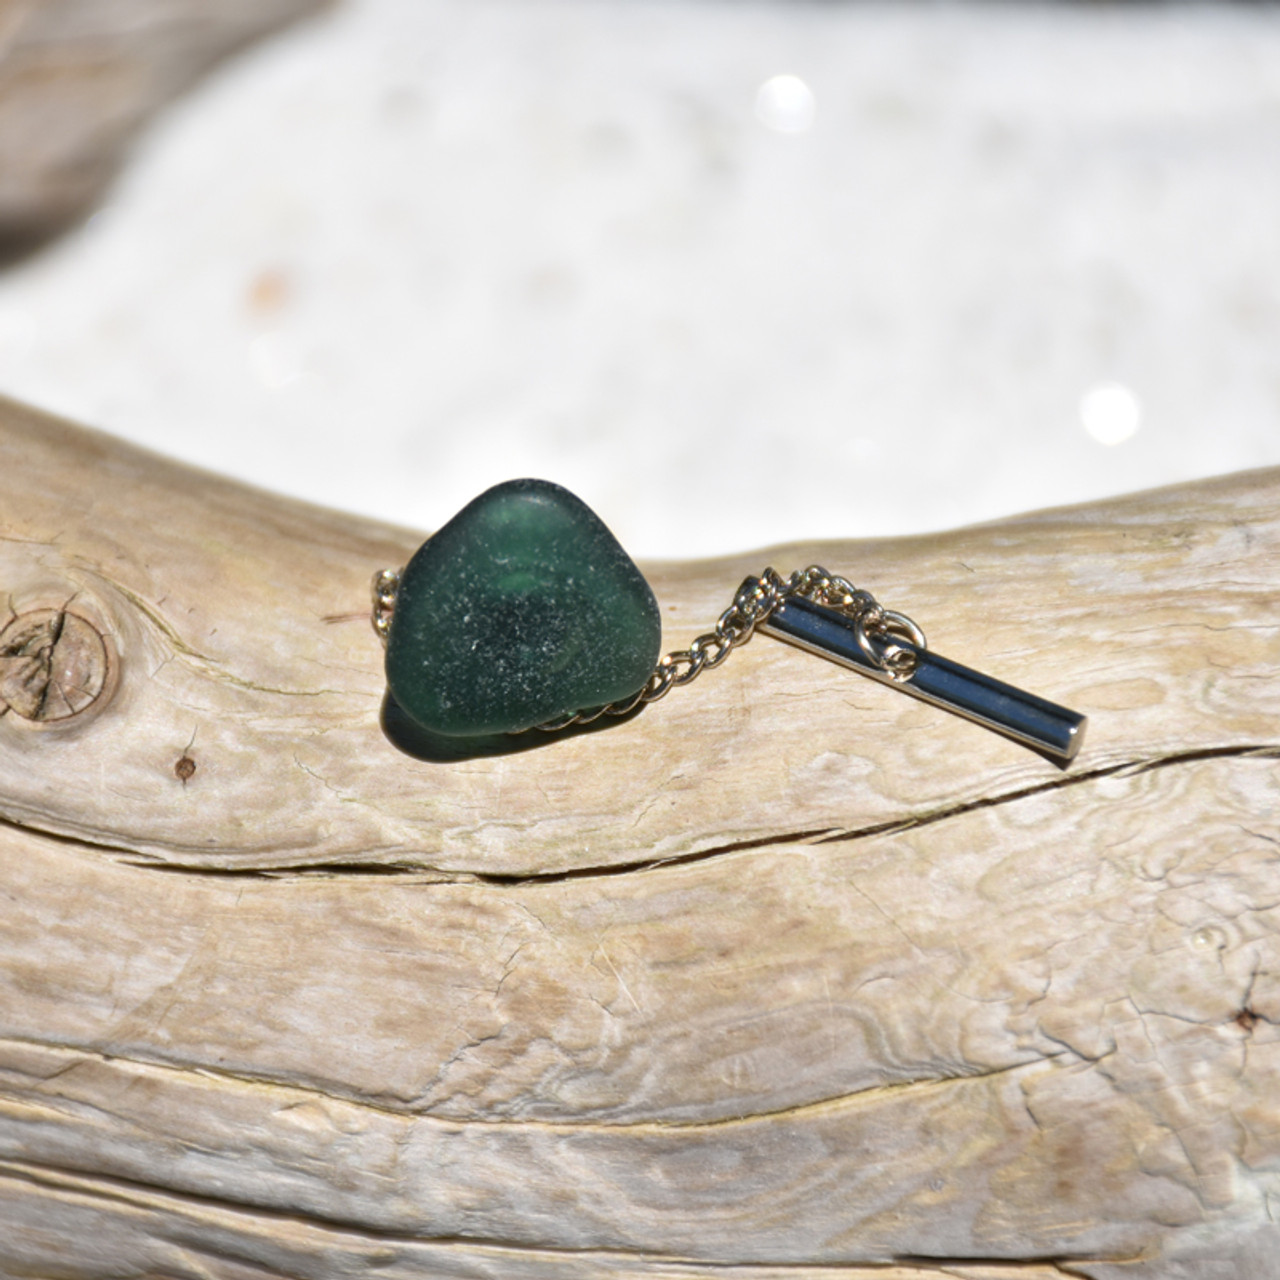 Olive Green Sea Glass Tie Tack